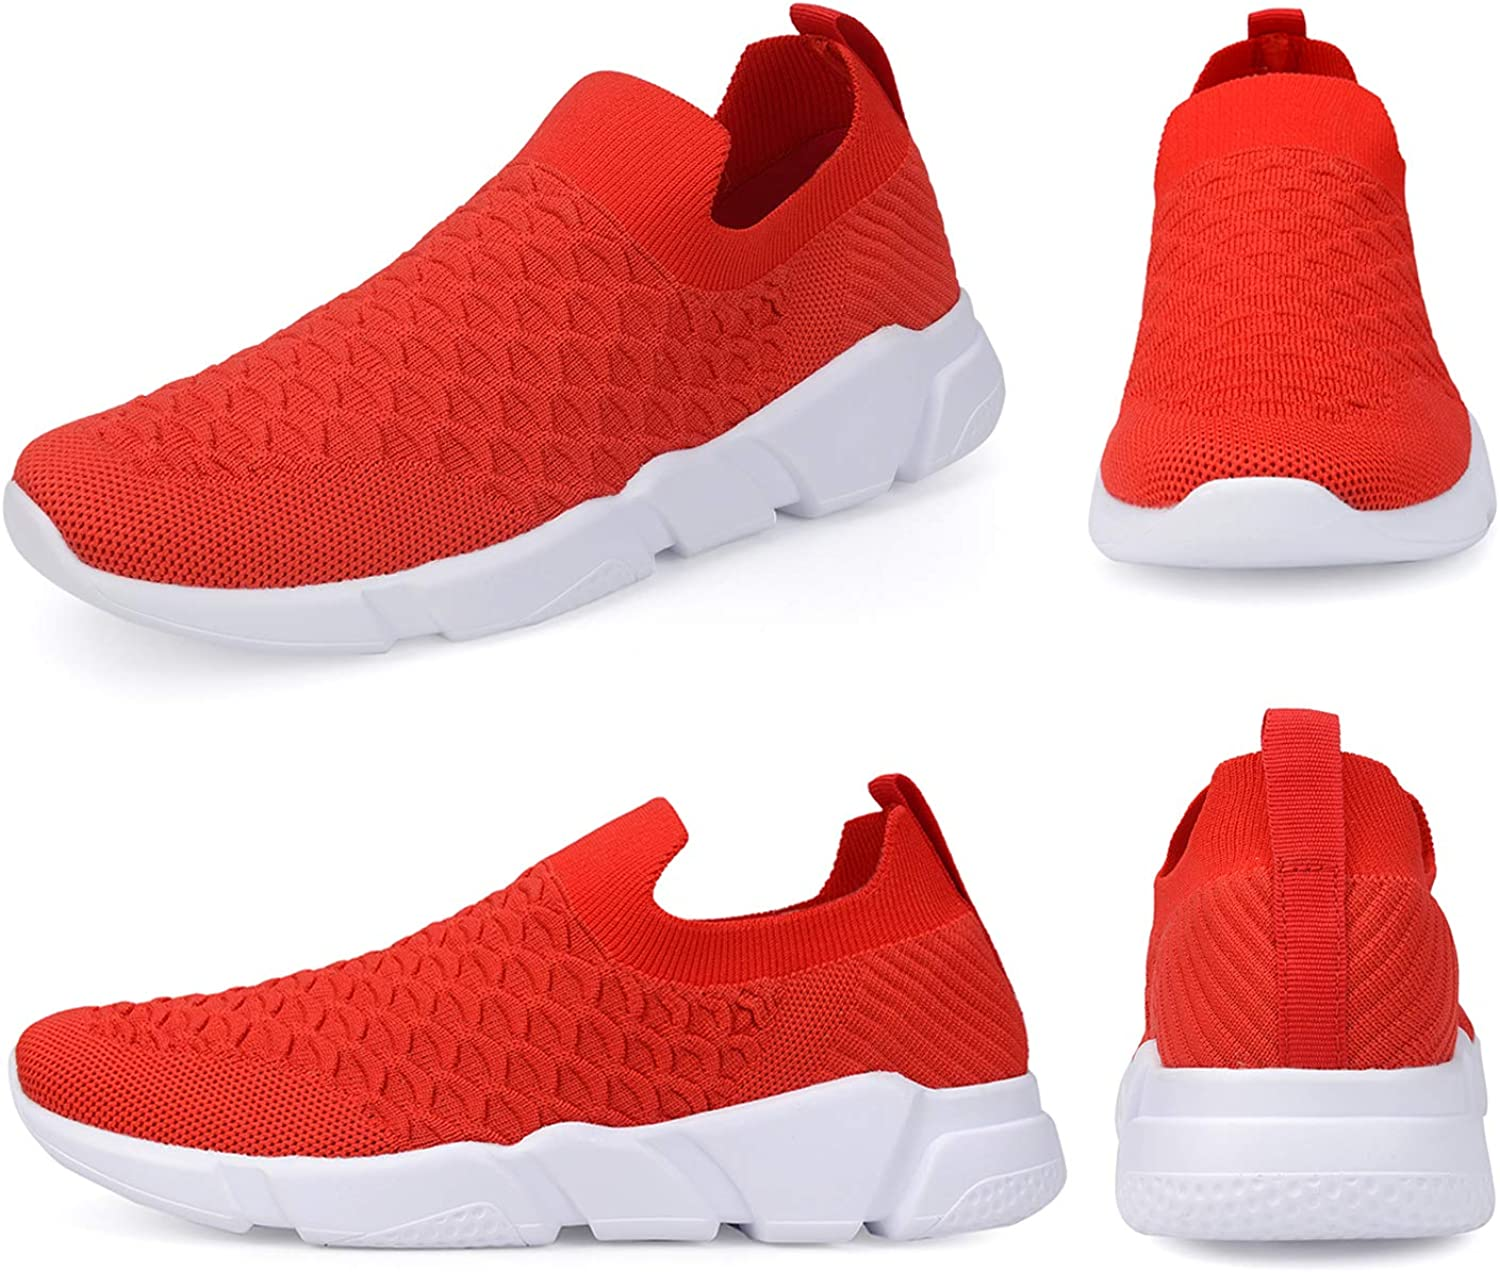 Good Selling A-PIE Men's Running Shoes Fashion Sneakers Casual Walking Shoes Lightweight 006red LM88NX